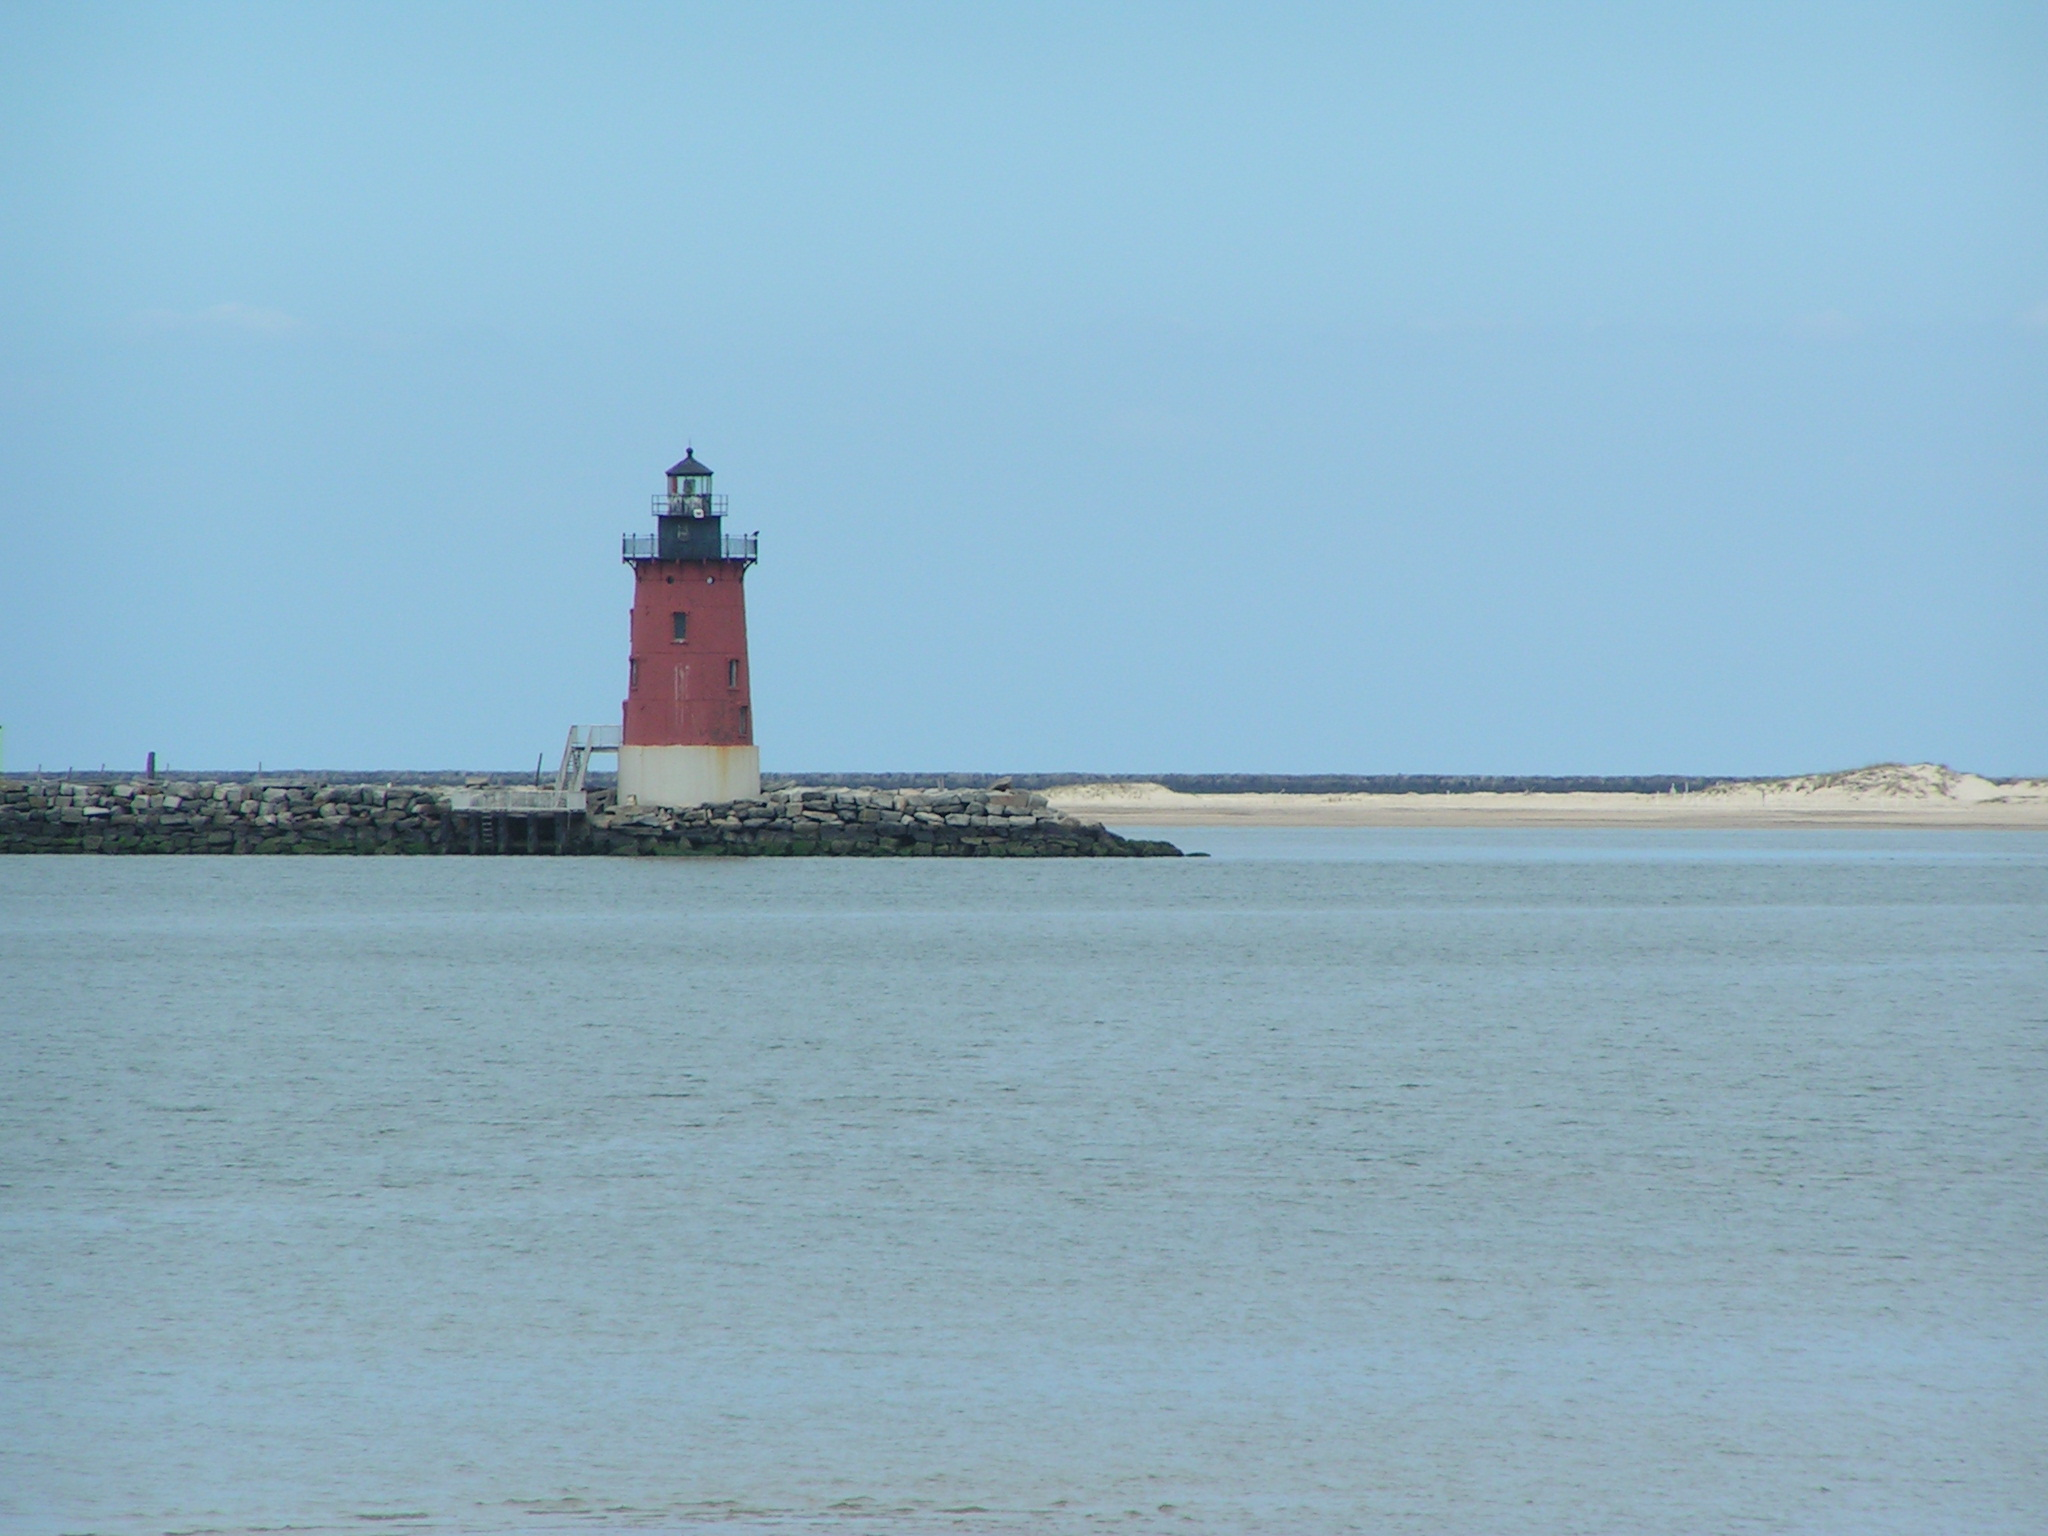 lighthouse, harbor of safe refuge, east end lighthouse, lewes, cape henlopen state park, sussex county, delaware